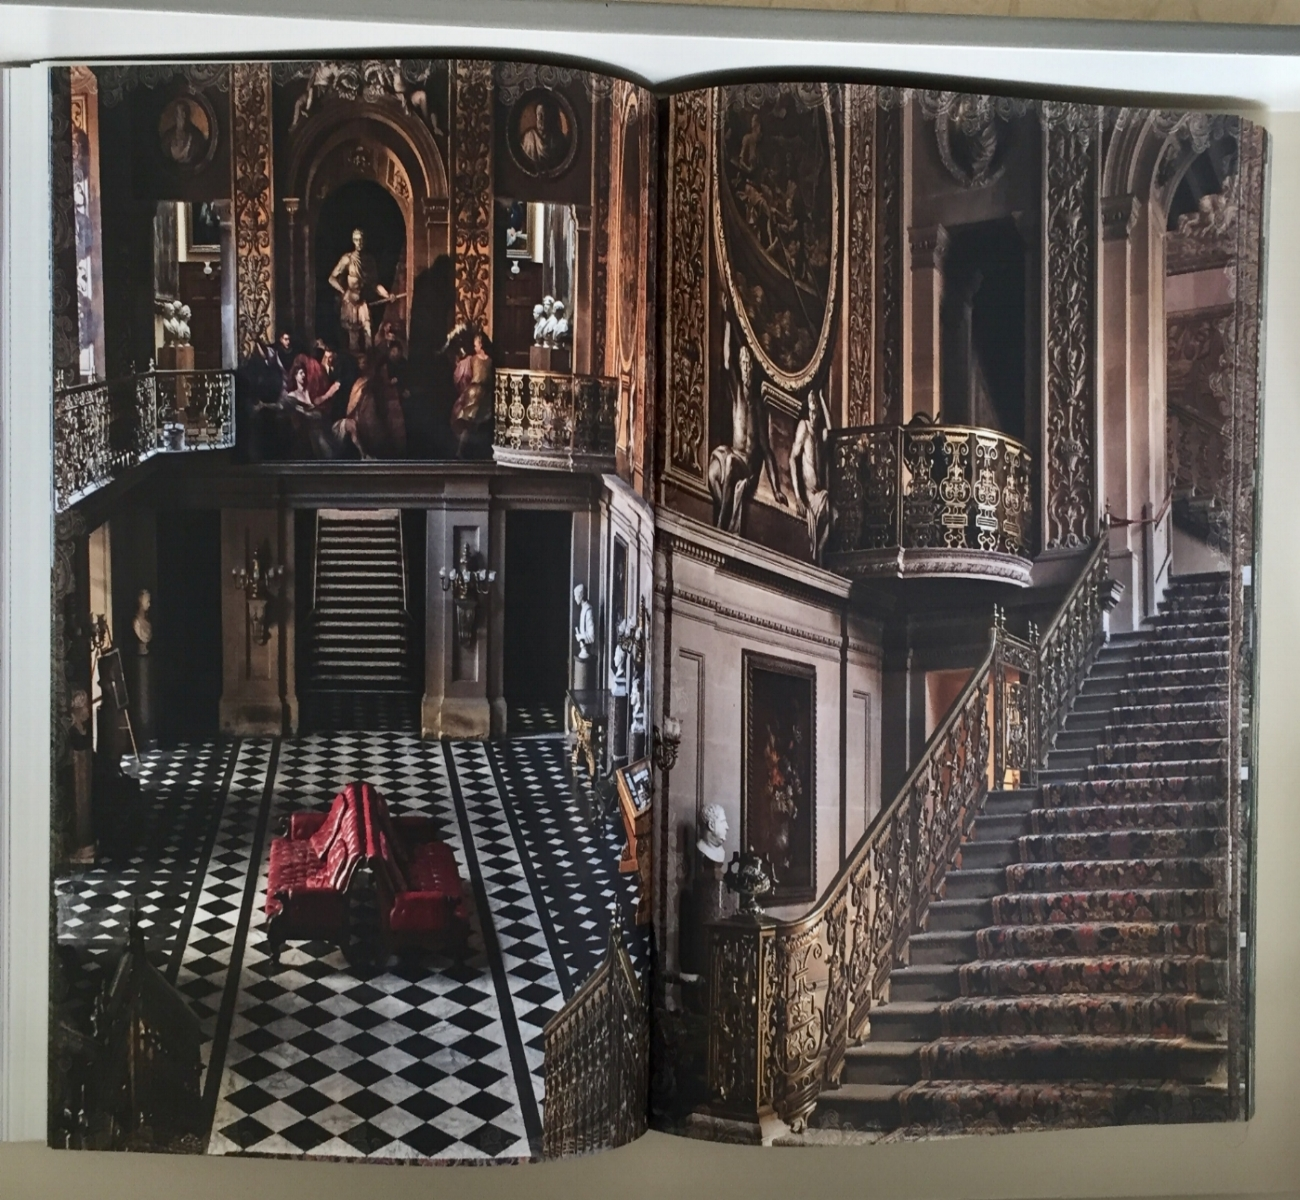 Chatsworth House - photographed in that up close and personal style where no detail is missed